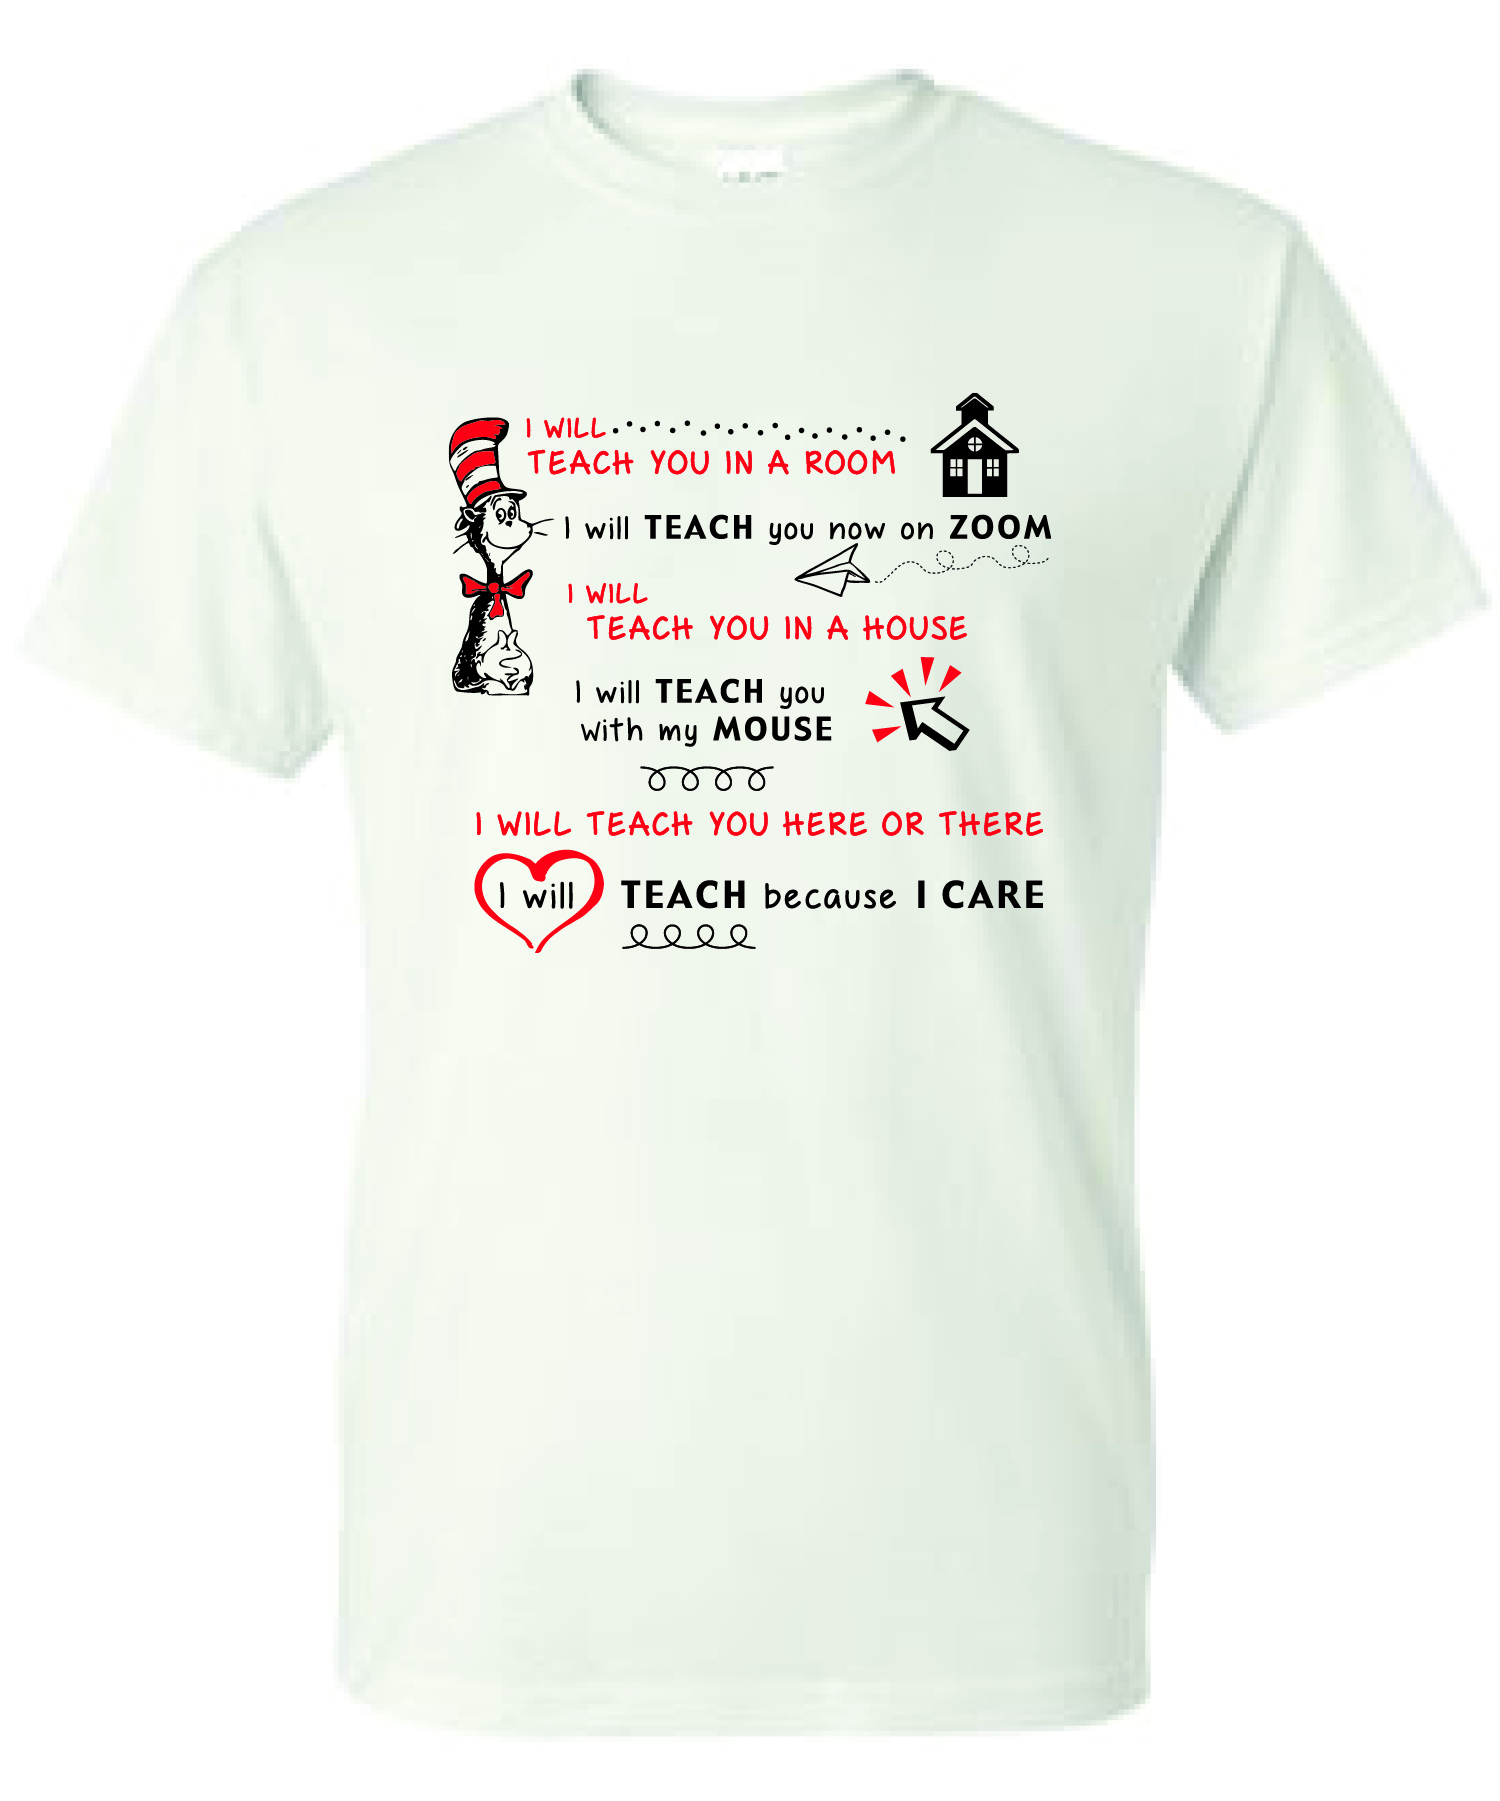 HEARTS FOR HEALTHCARE (YOUTH RED) (Clone) (Clone)